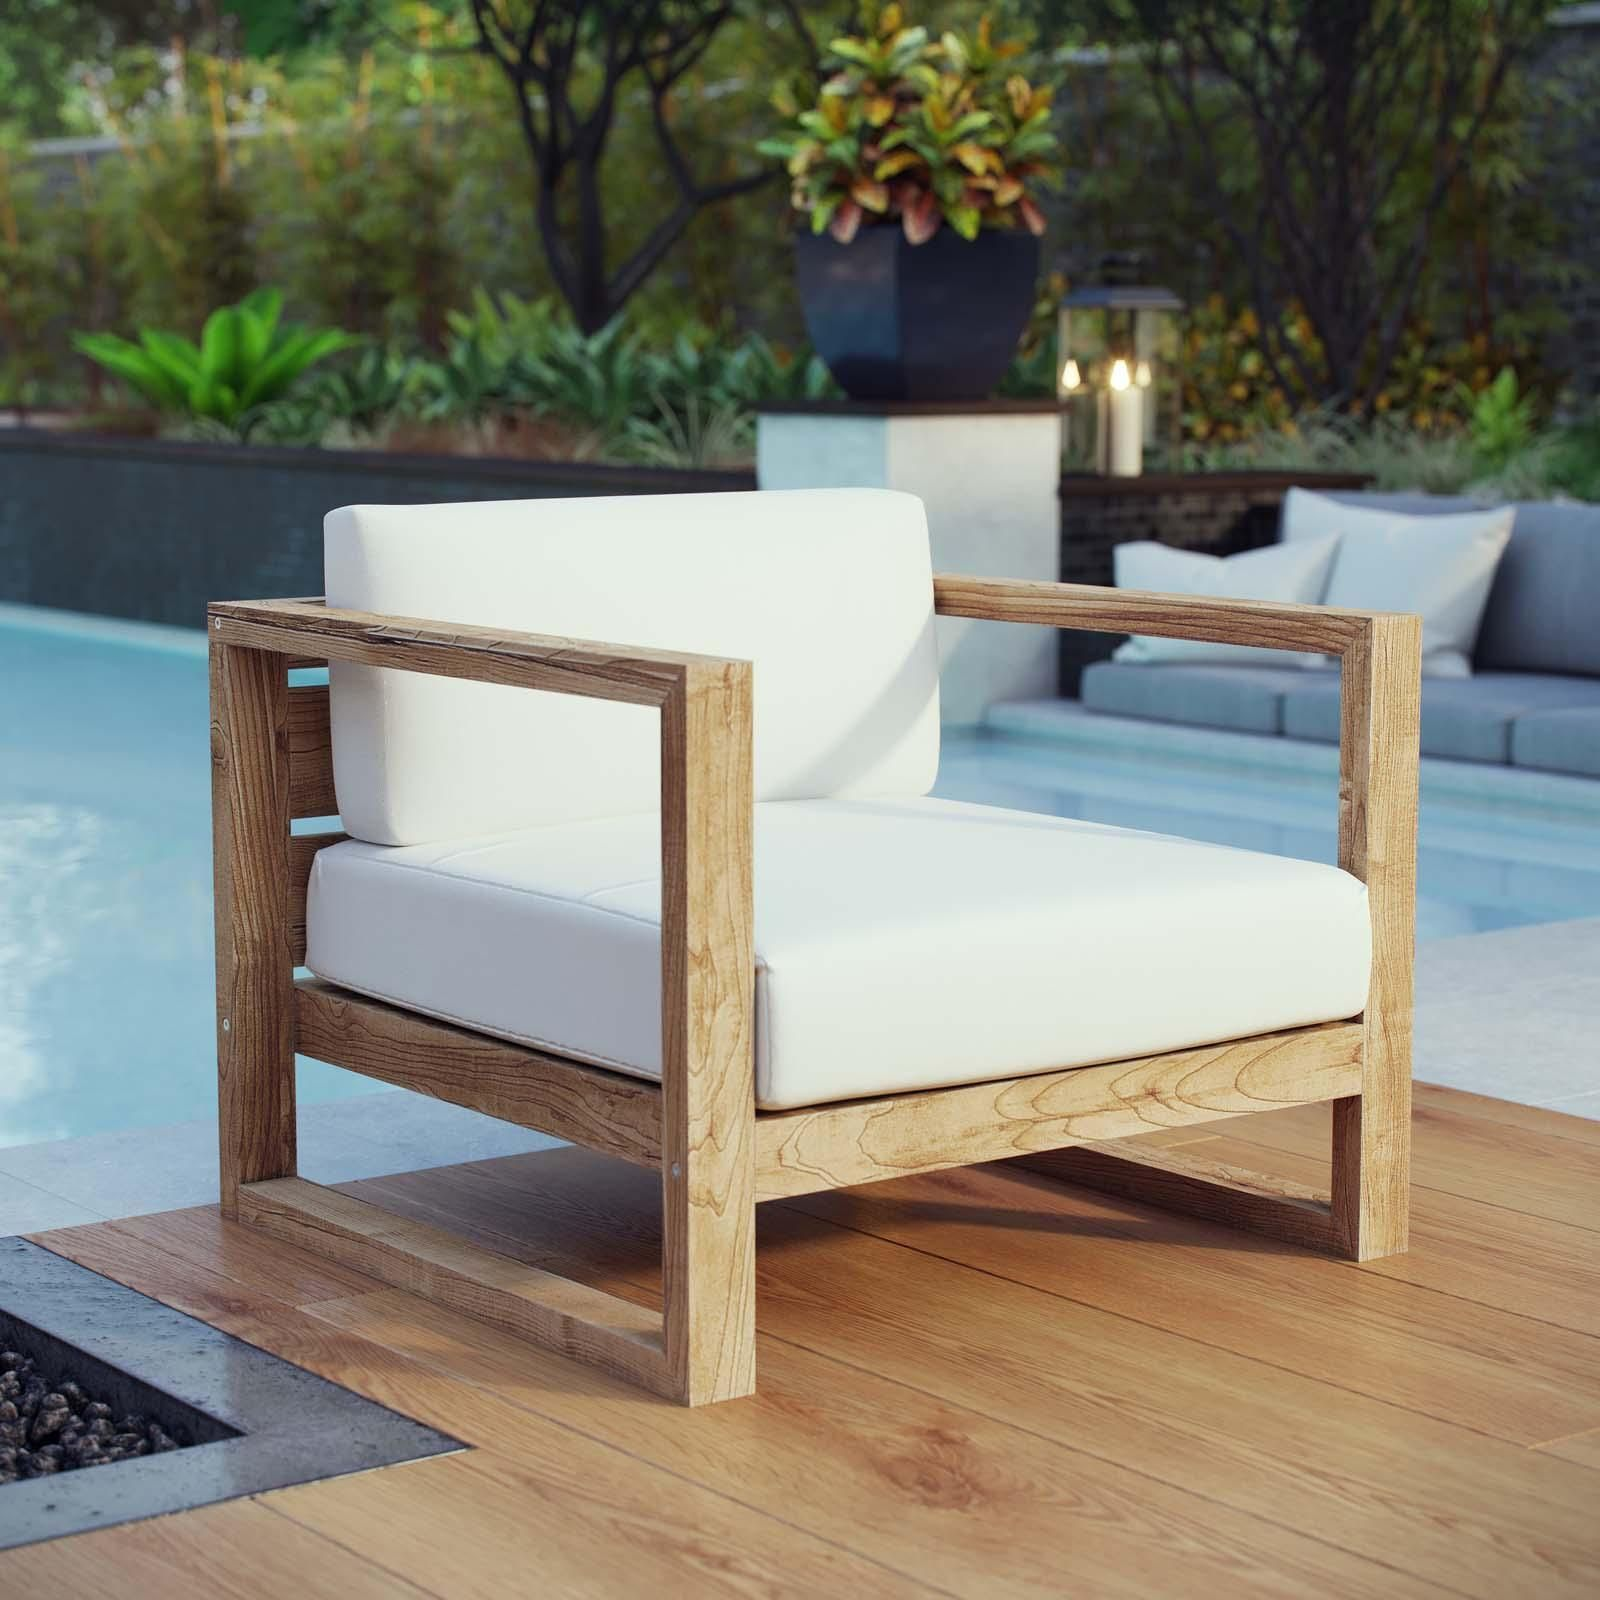 Refresh Your Outdoor Decor With The Upland Teak Outdoor Collection